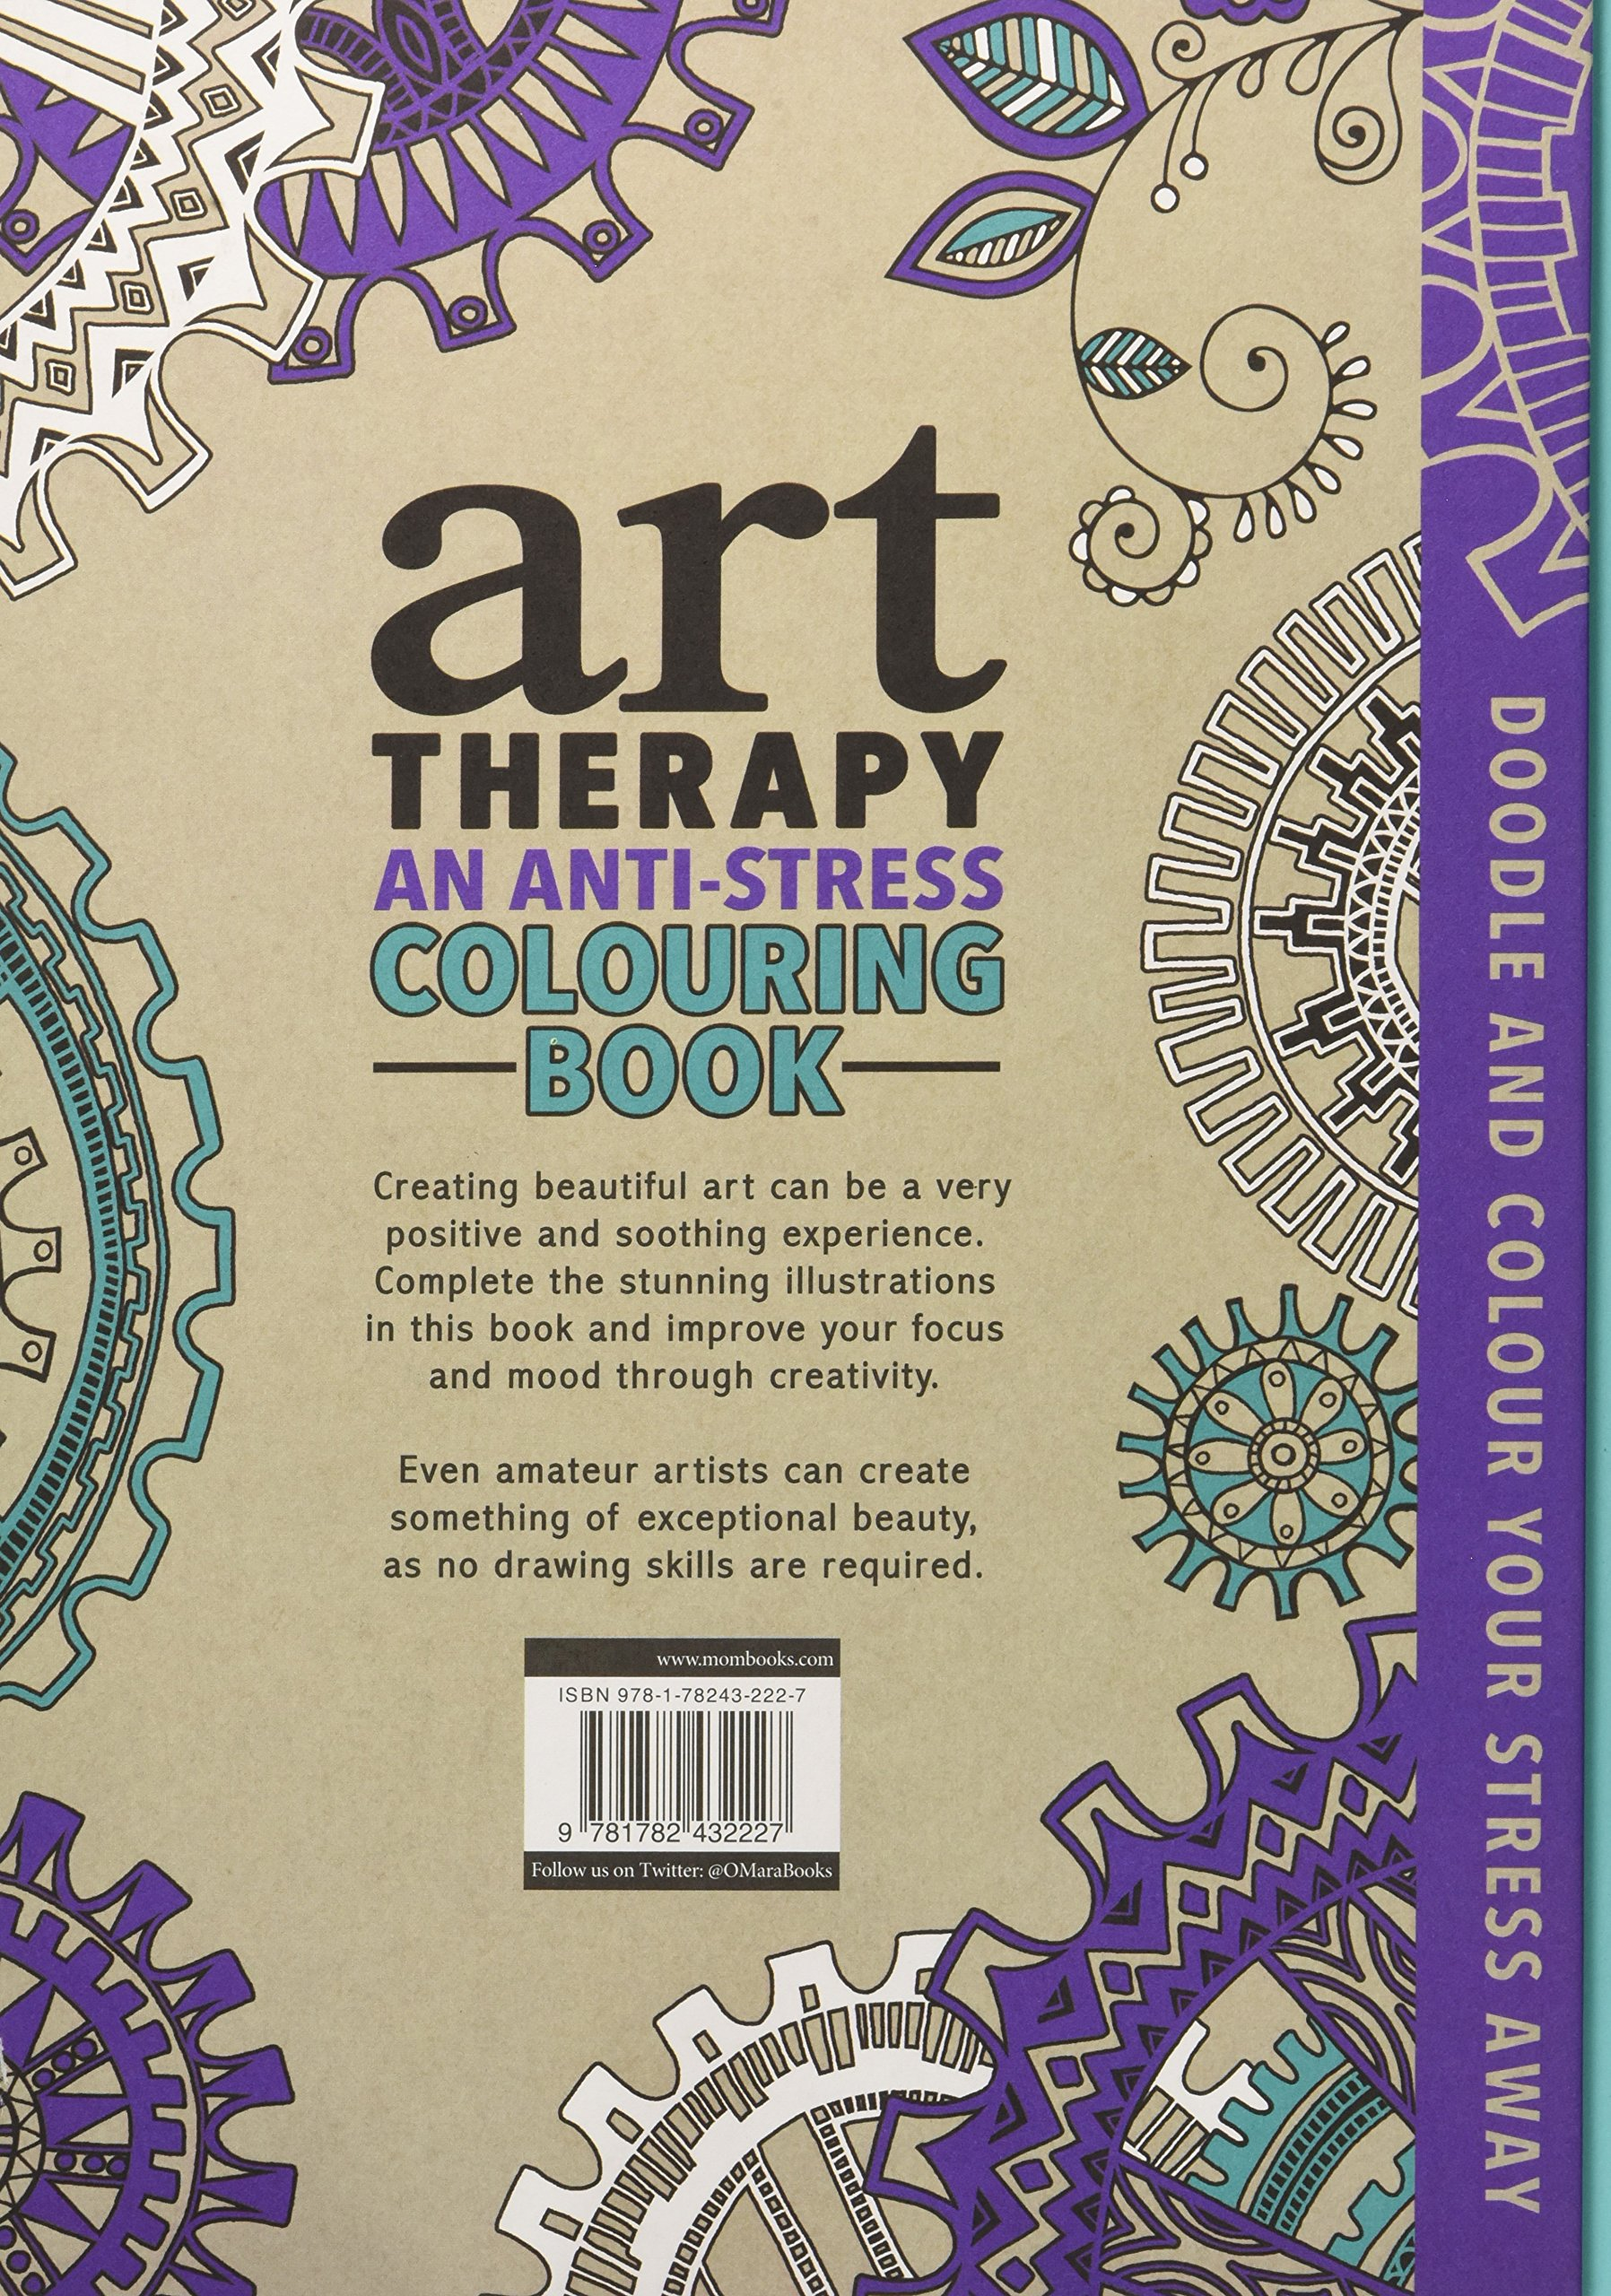 Art therapy coloring book michael omara - The Art Therapy Colouring Book Ikuo Horiguchi 9781782432227 Amazon Com Books